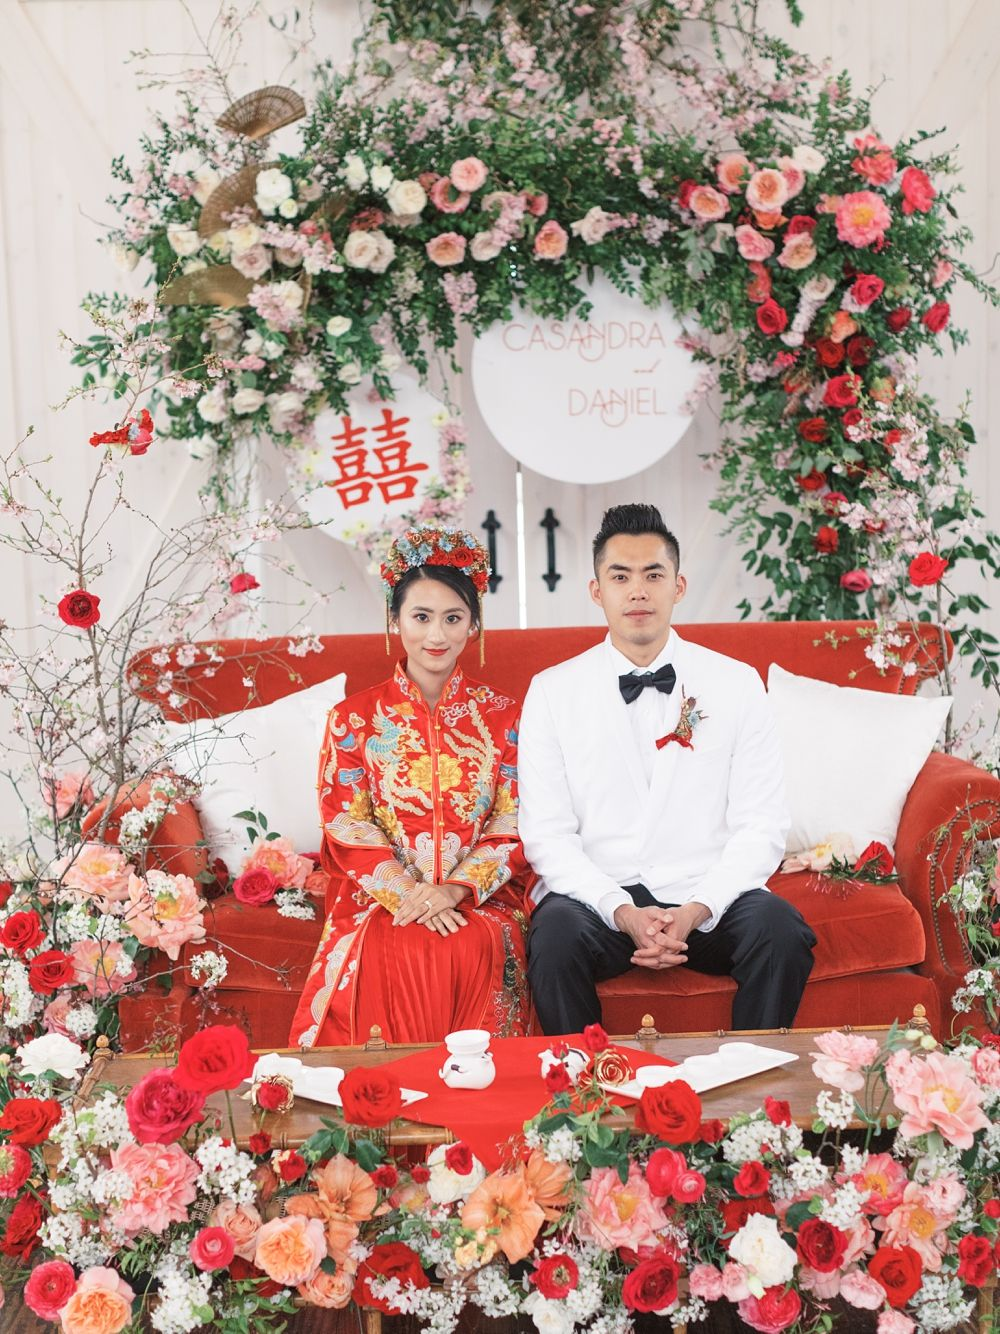 A Modern Chinese Wedding Rosewood Farms Wedding In 2020 Chinese Wedding Decor Chinese Wedding Tea Ceremony Traditional Chinese Wedding